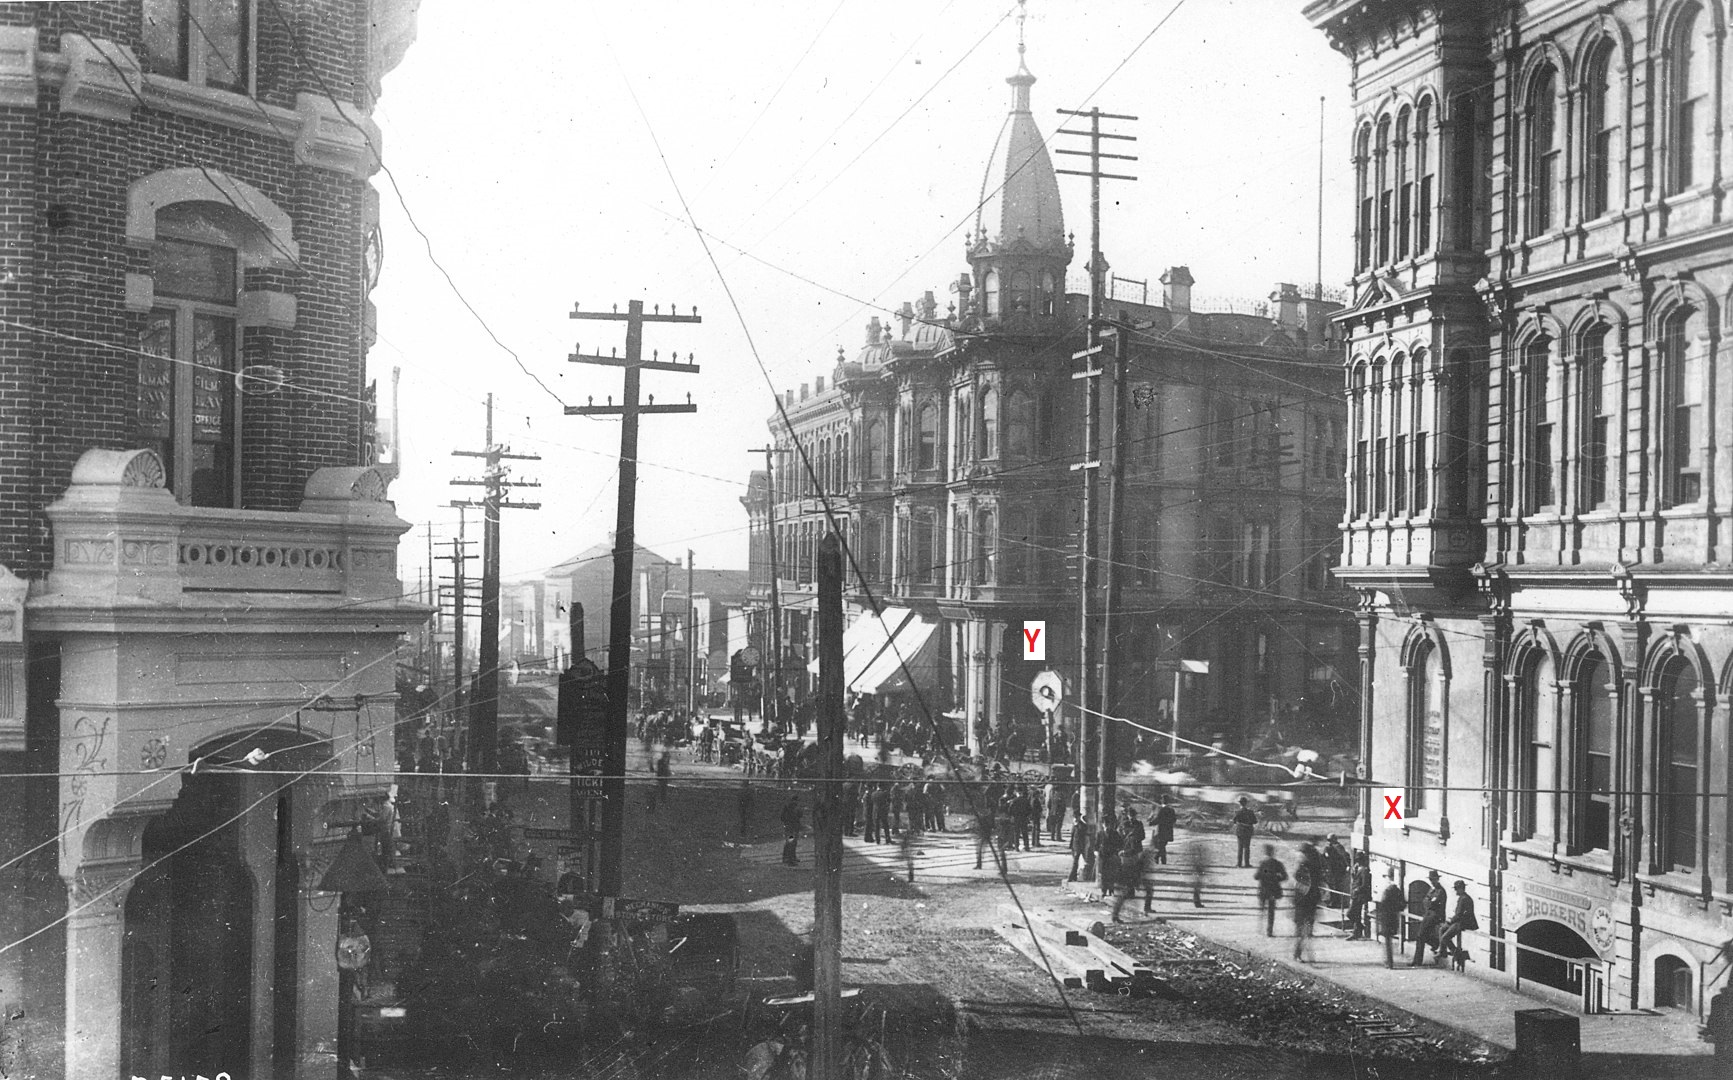 Yesler_Way_looking_west_from_1st_Ave,_June_5,_1889-1.jpeg